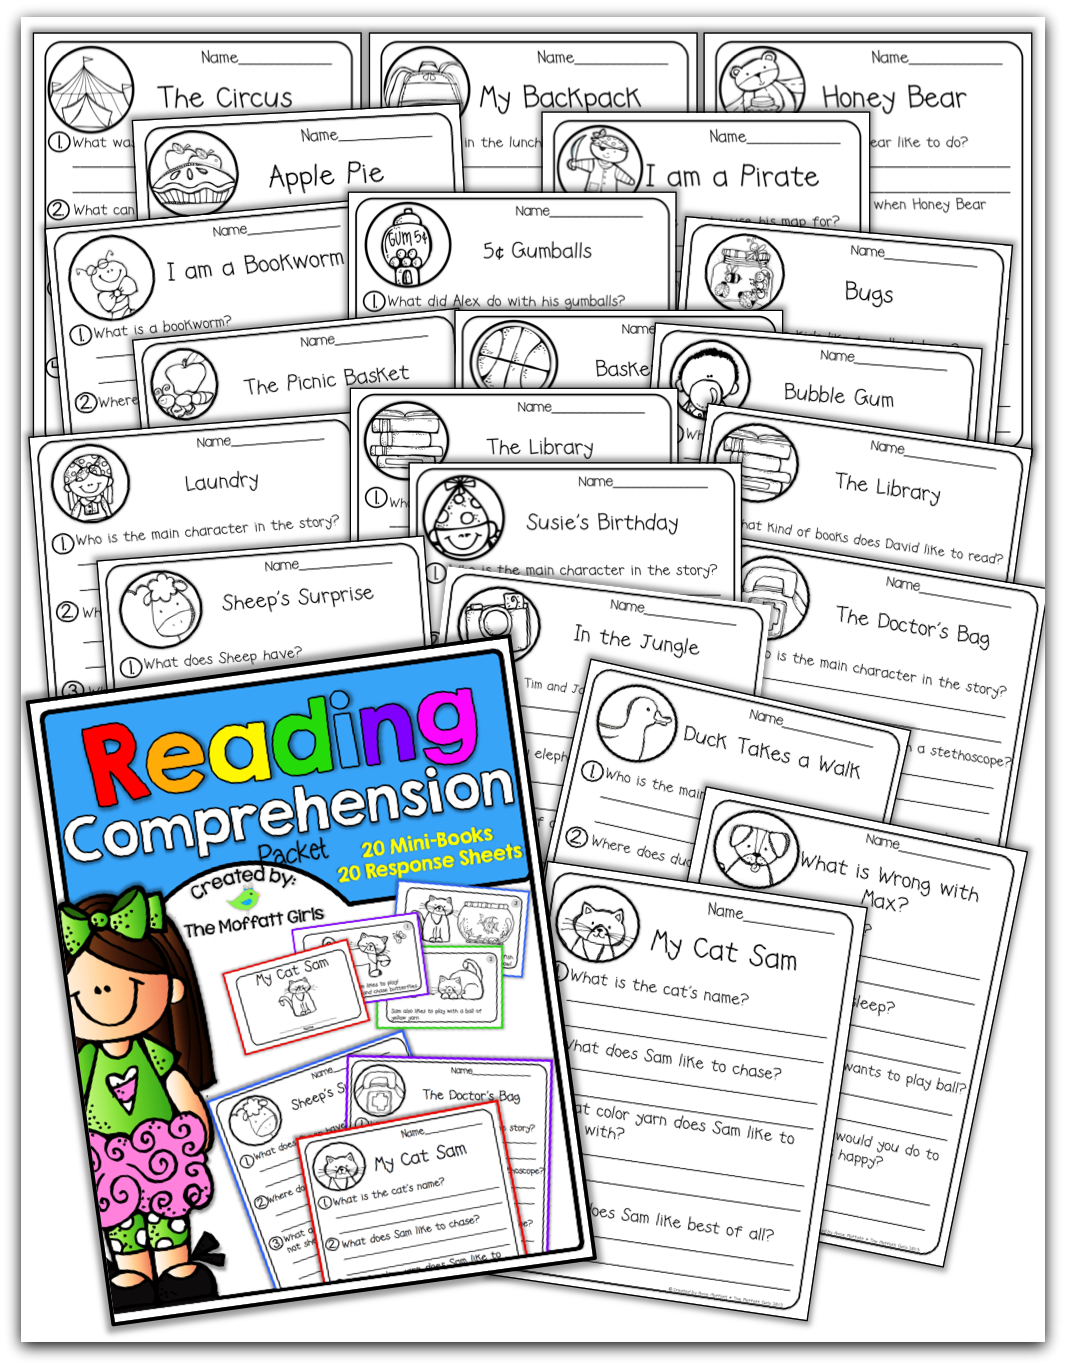 Reading Comprehension Packet Perfect For Fluency And Comprehension Checks